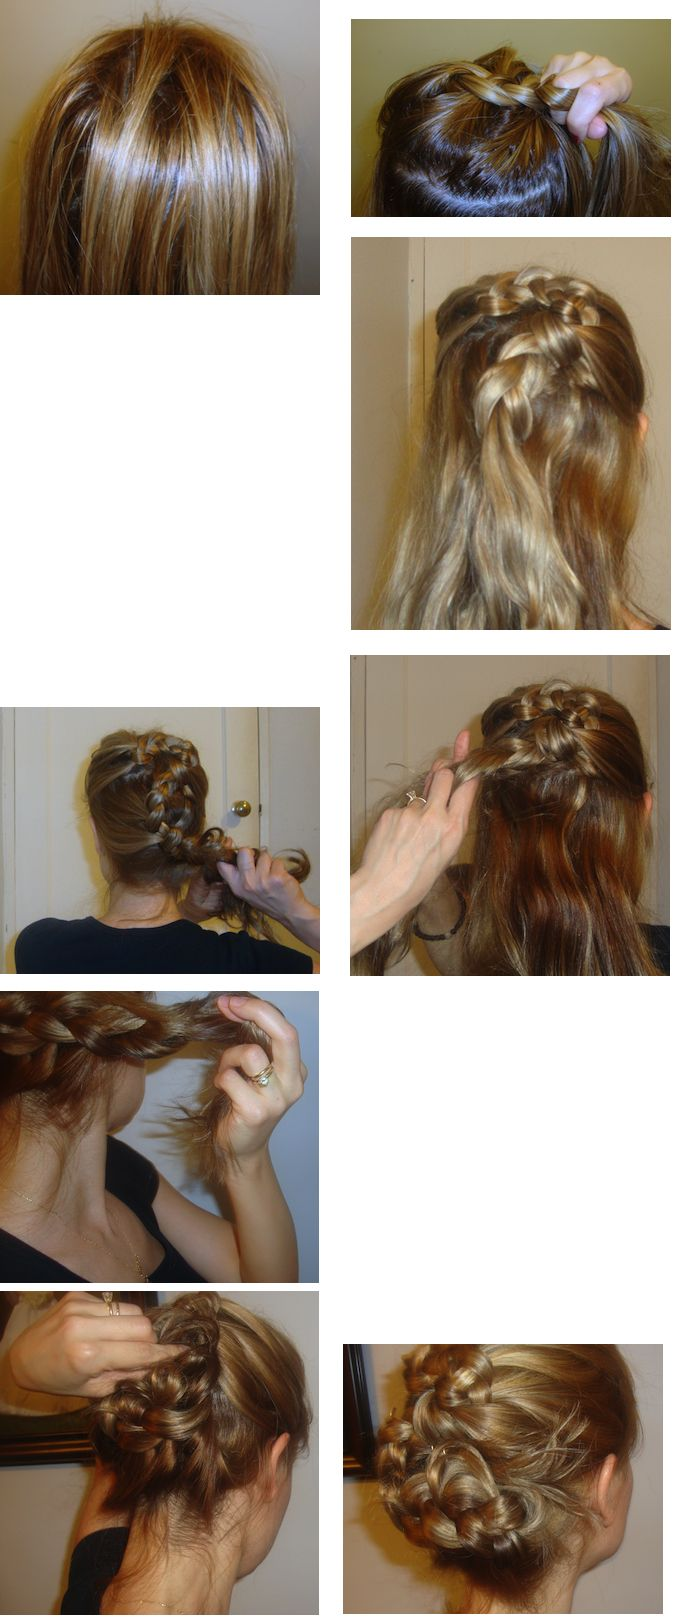 romantic feminine renaissance hair style braids... could pull it a little more to the side and put like a nice accessory with it?